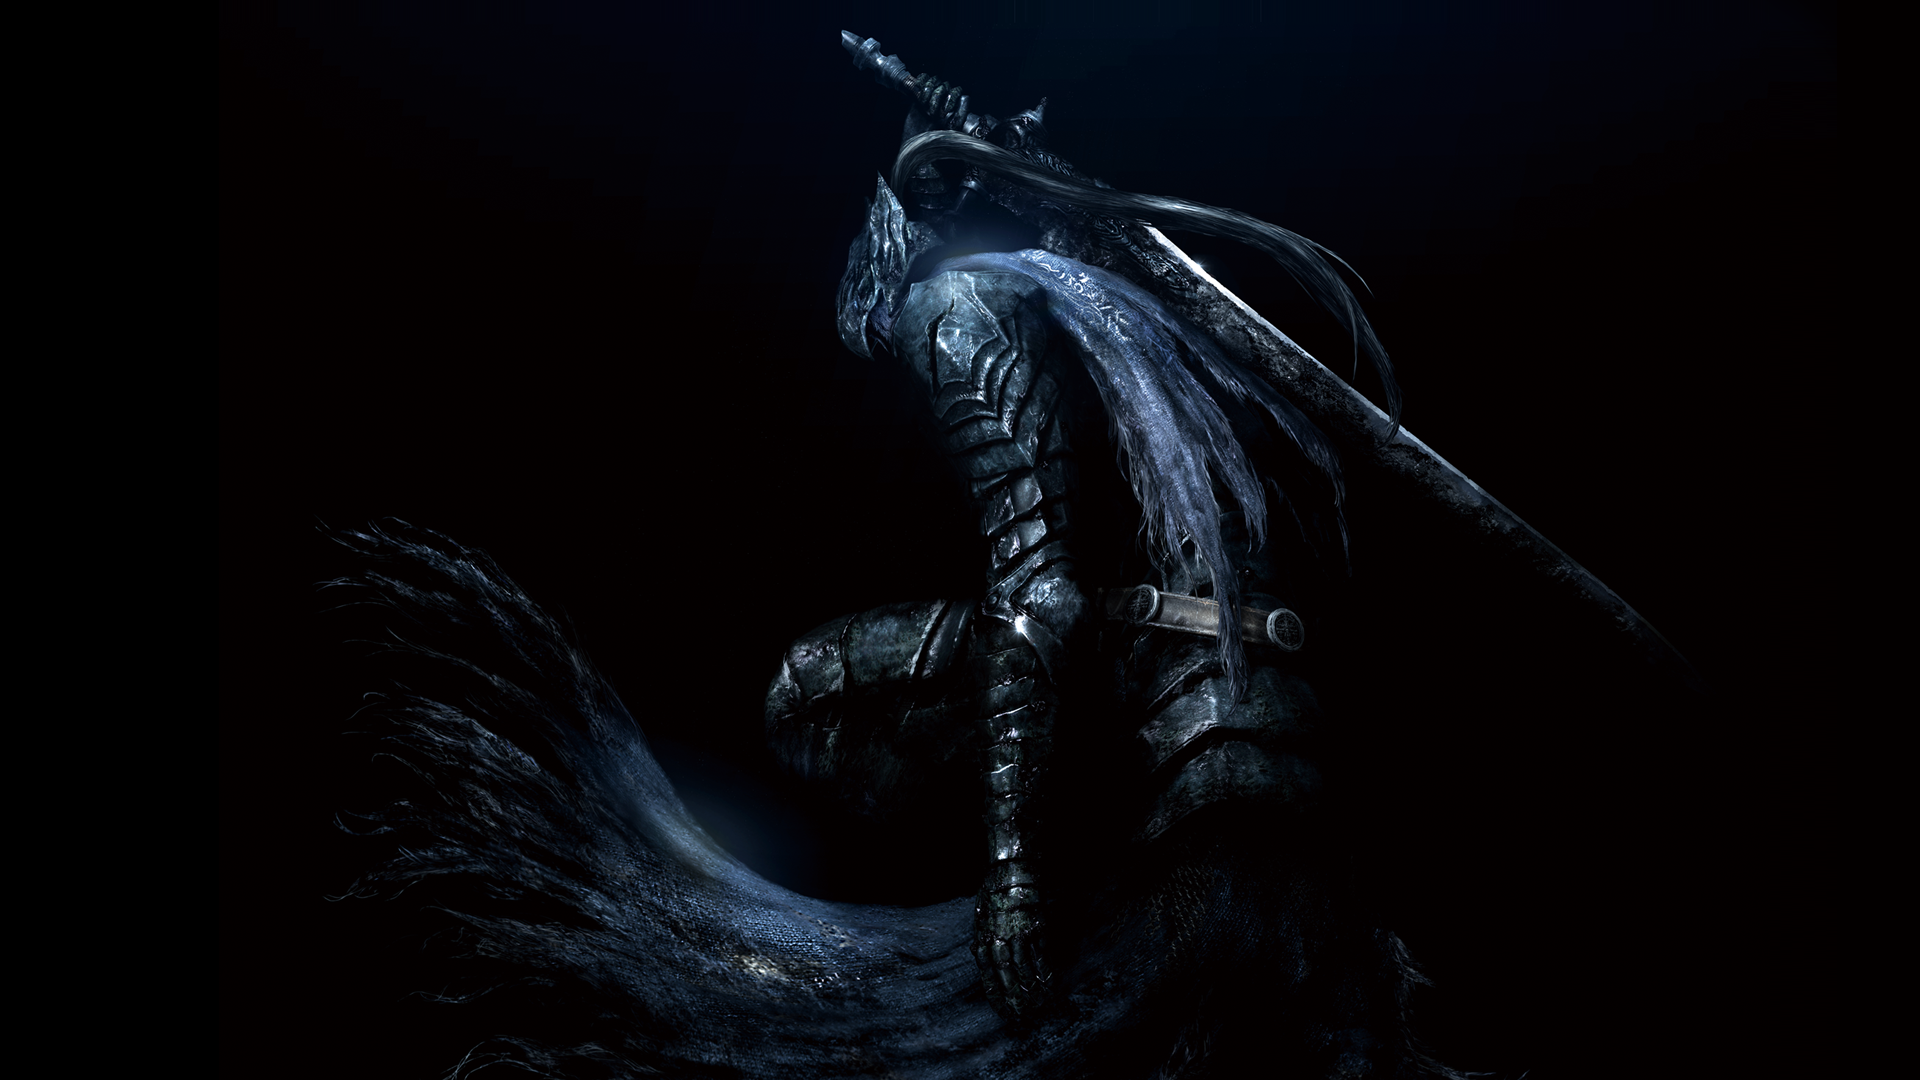 864034-artorias-the-abysswalker-dark-souls-fantasy-art-video-games